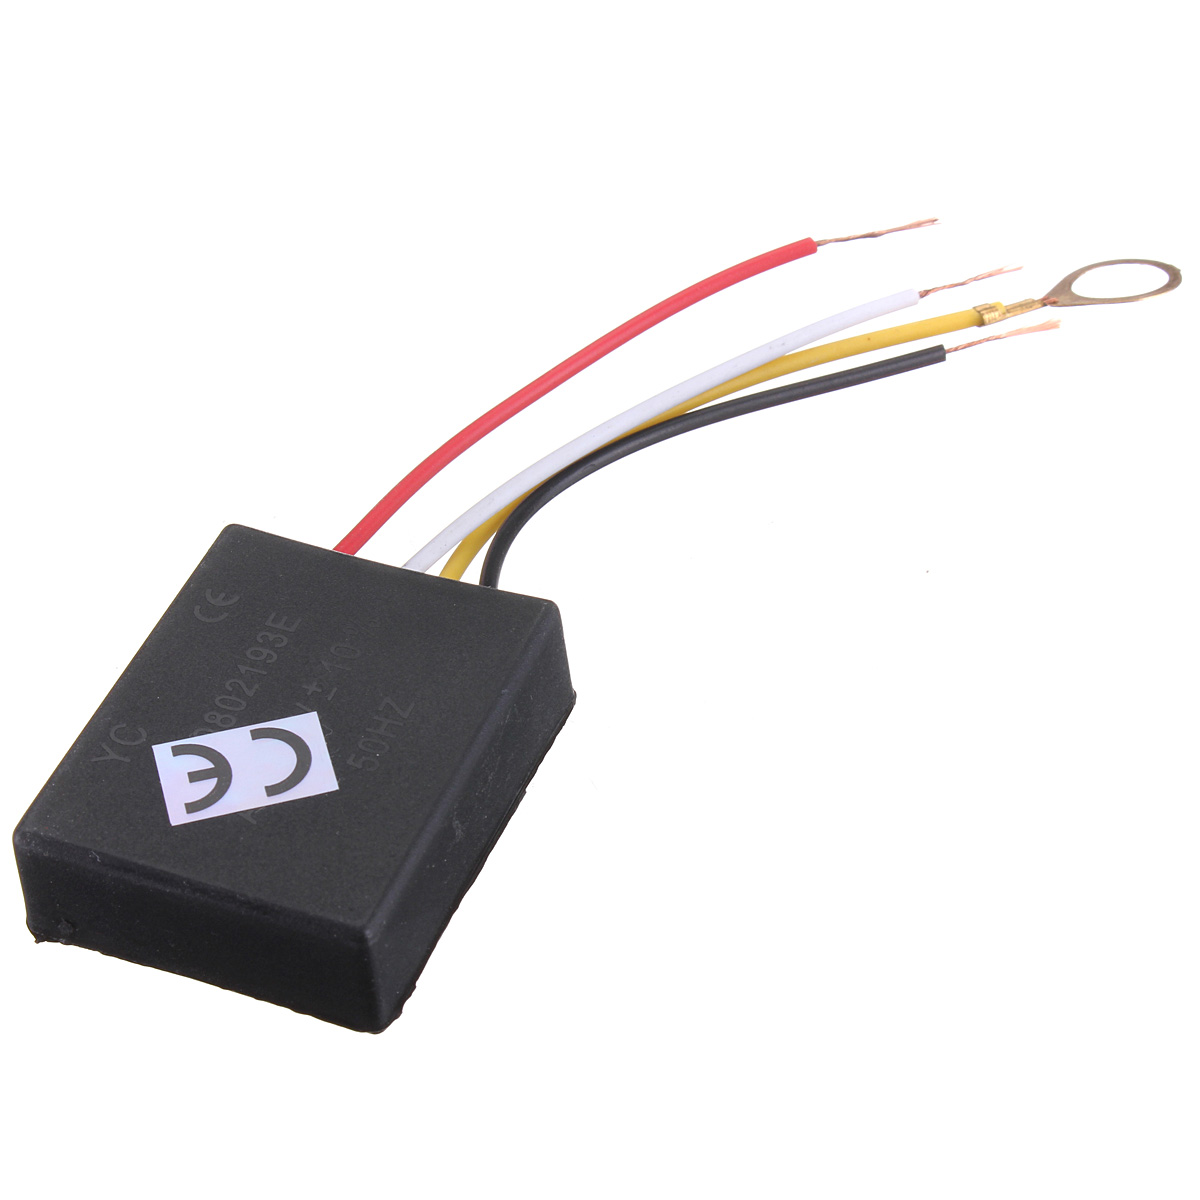 Terrific Ac 100 240V 3 Way Touch Light Switch Sensor Control Repair For Desk Wiring 101 Ivorowellnesstrialsorg